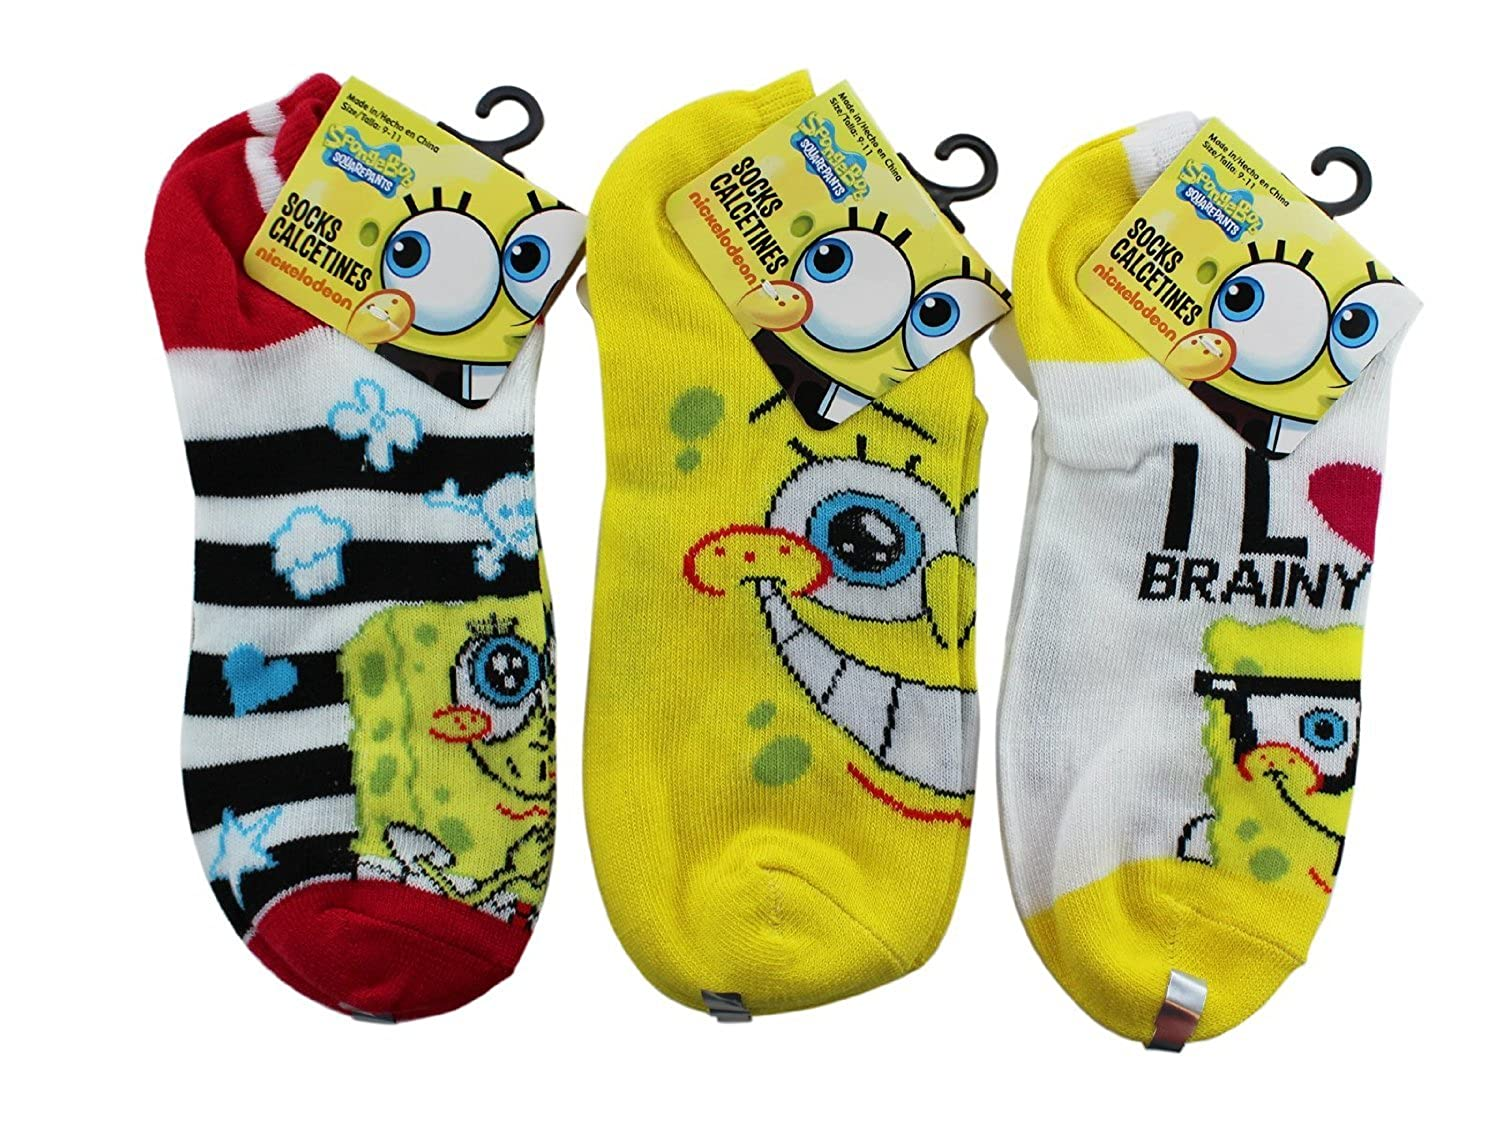 Amazon.com: 3 Piece Spongebob Squarepants Booty Socks (Assorted) - Spongebob Booty Socks ...: Clothing